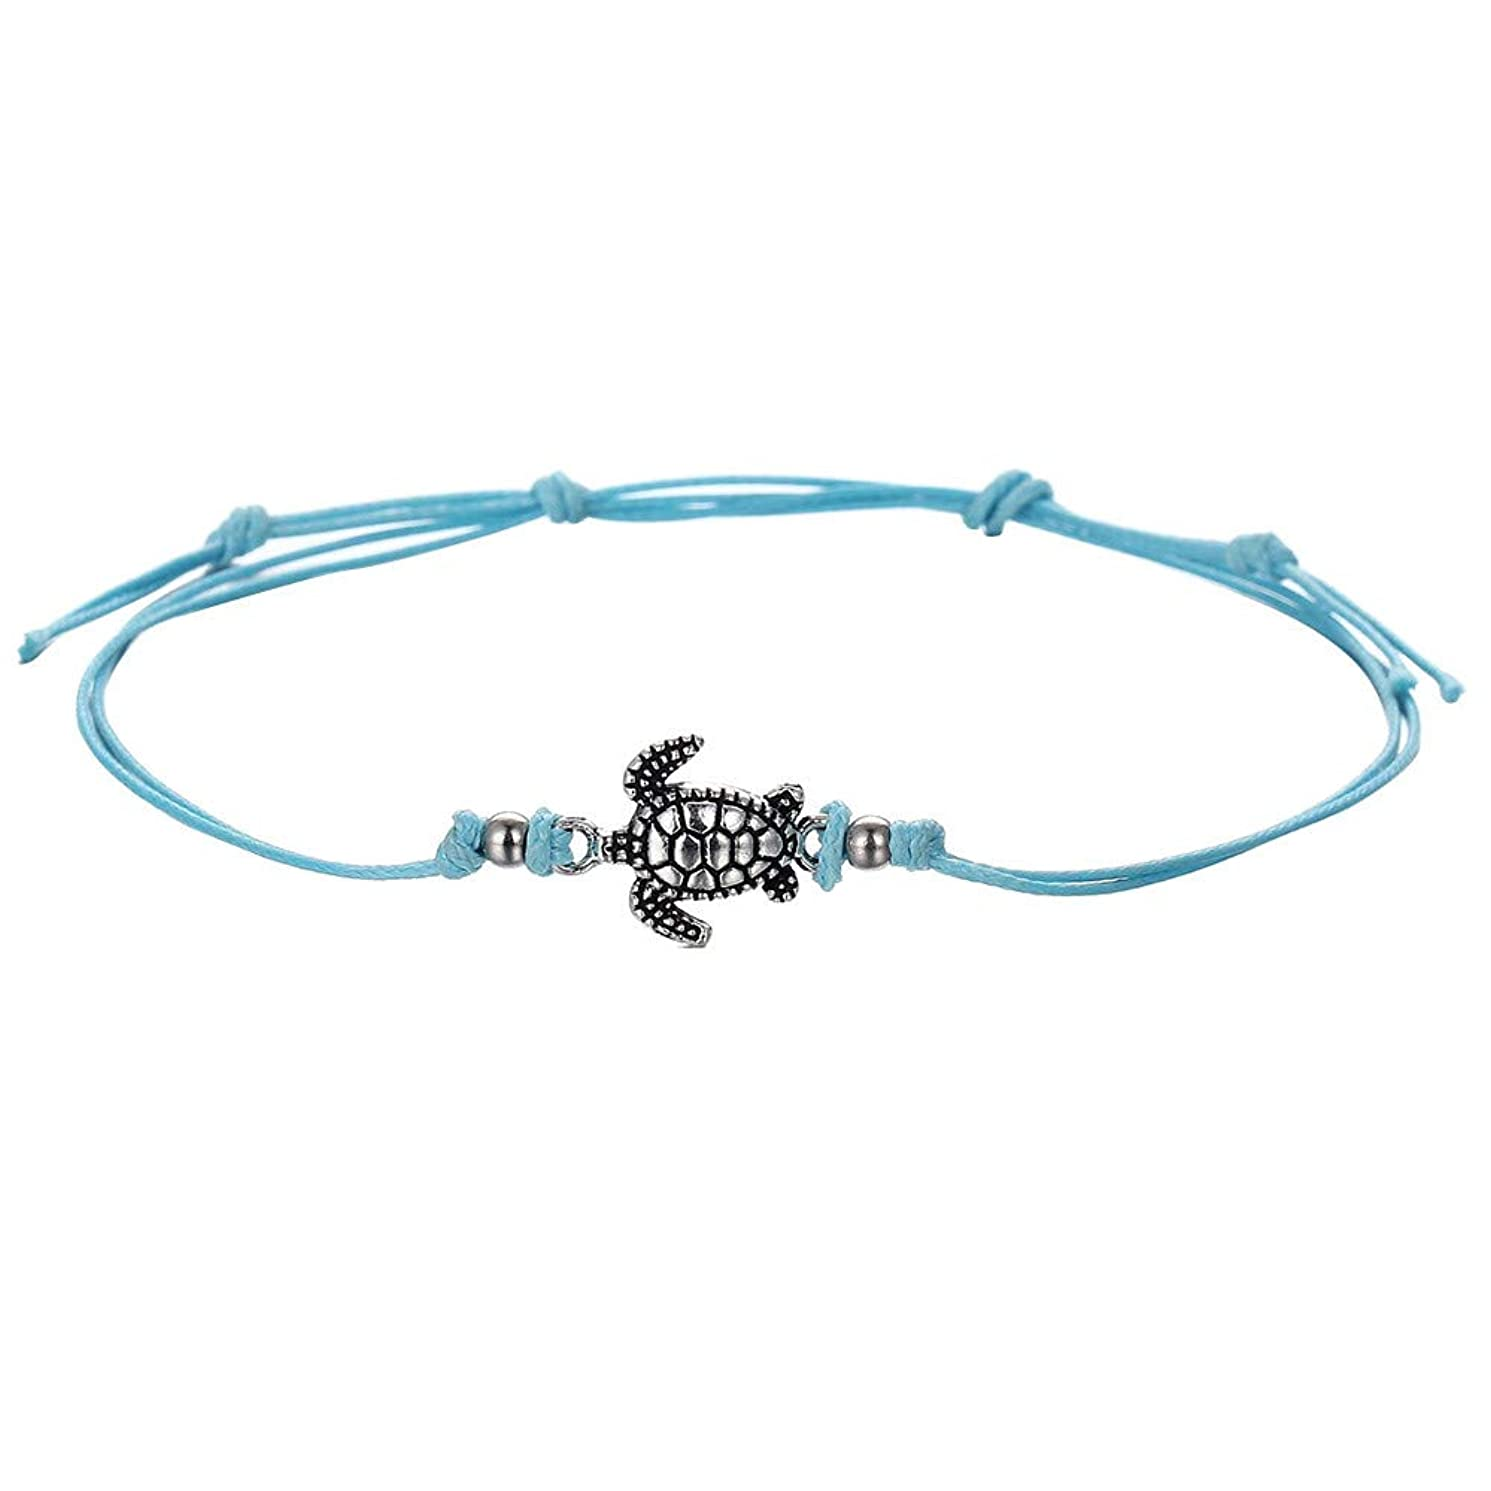 Bohemia Ankle Bracelets for Women Beaded Anklet Turqoise Alloy Anklet Beach Foot Bracelet for Women & Girls Vintage Ankle Foot Chain for Beach Party Travel